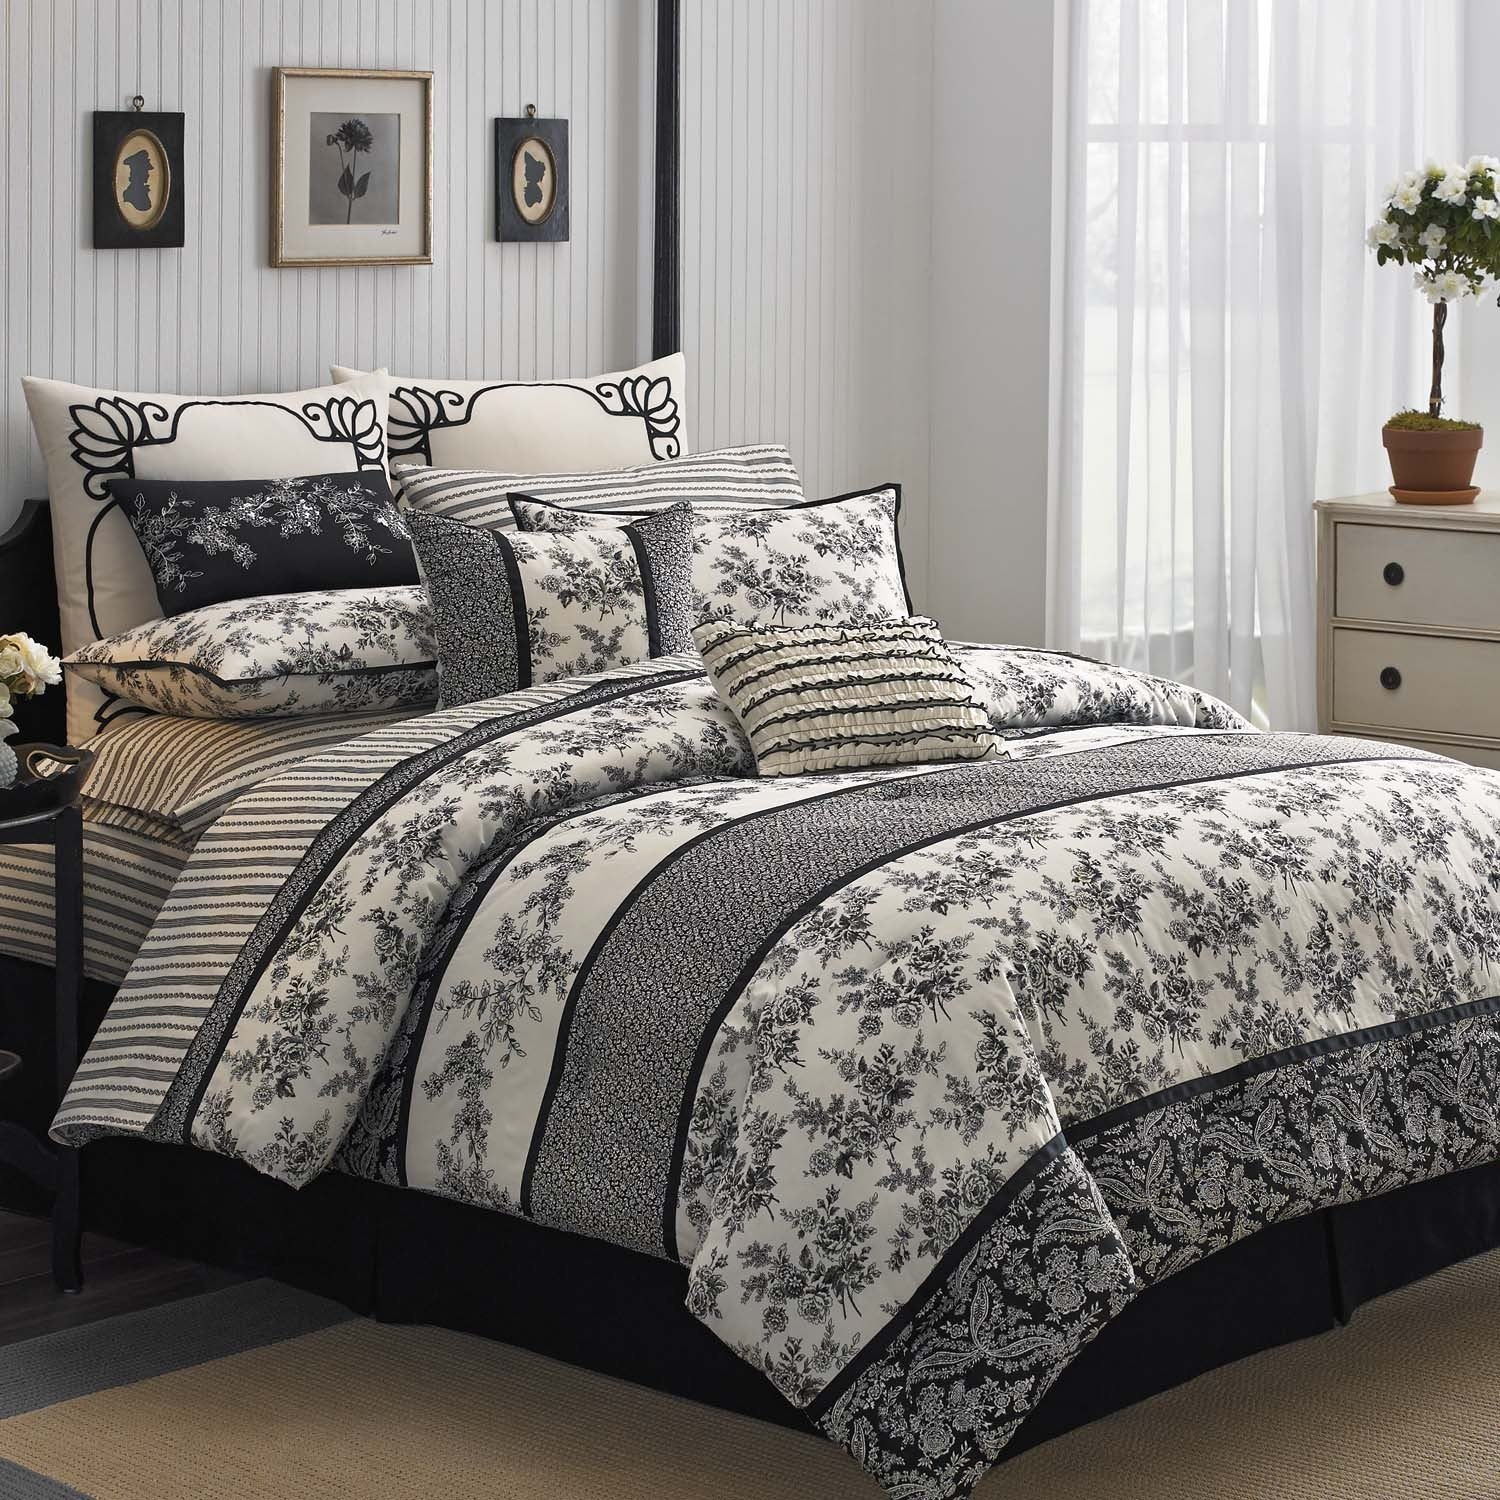 Laura Ashley Cassandra 4-pc Comforter set